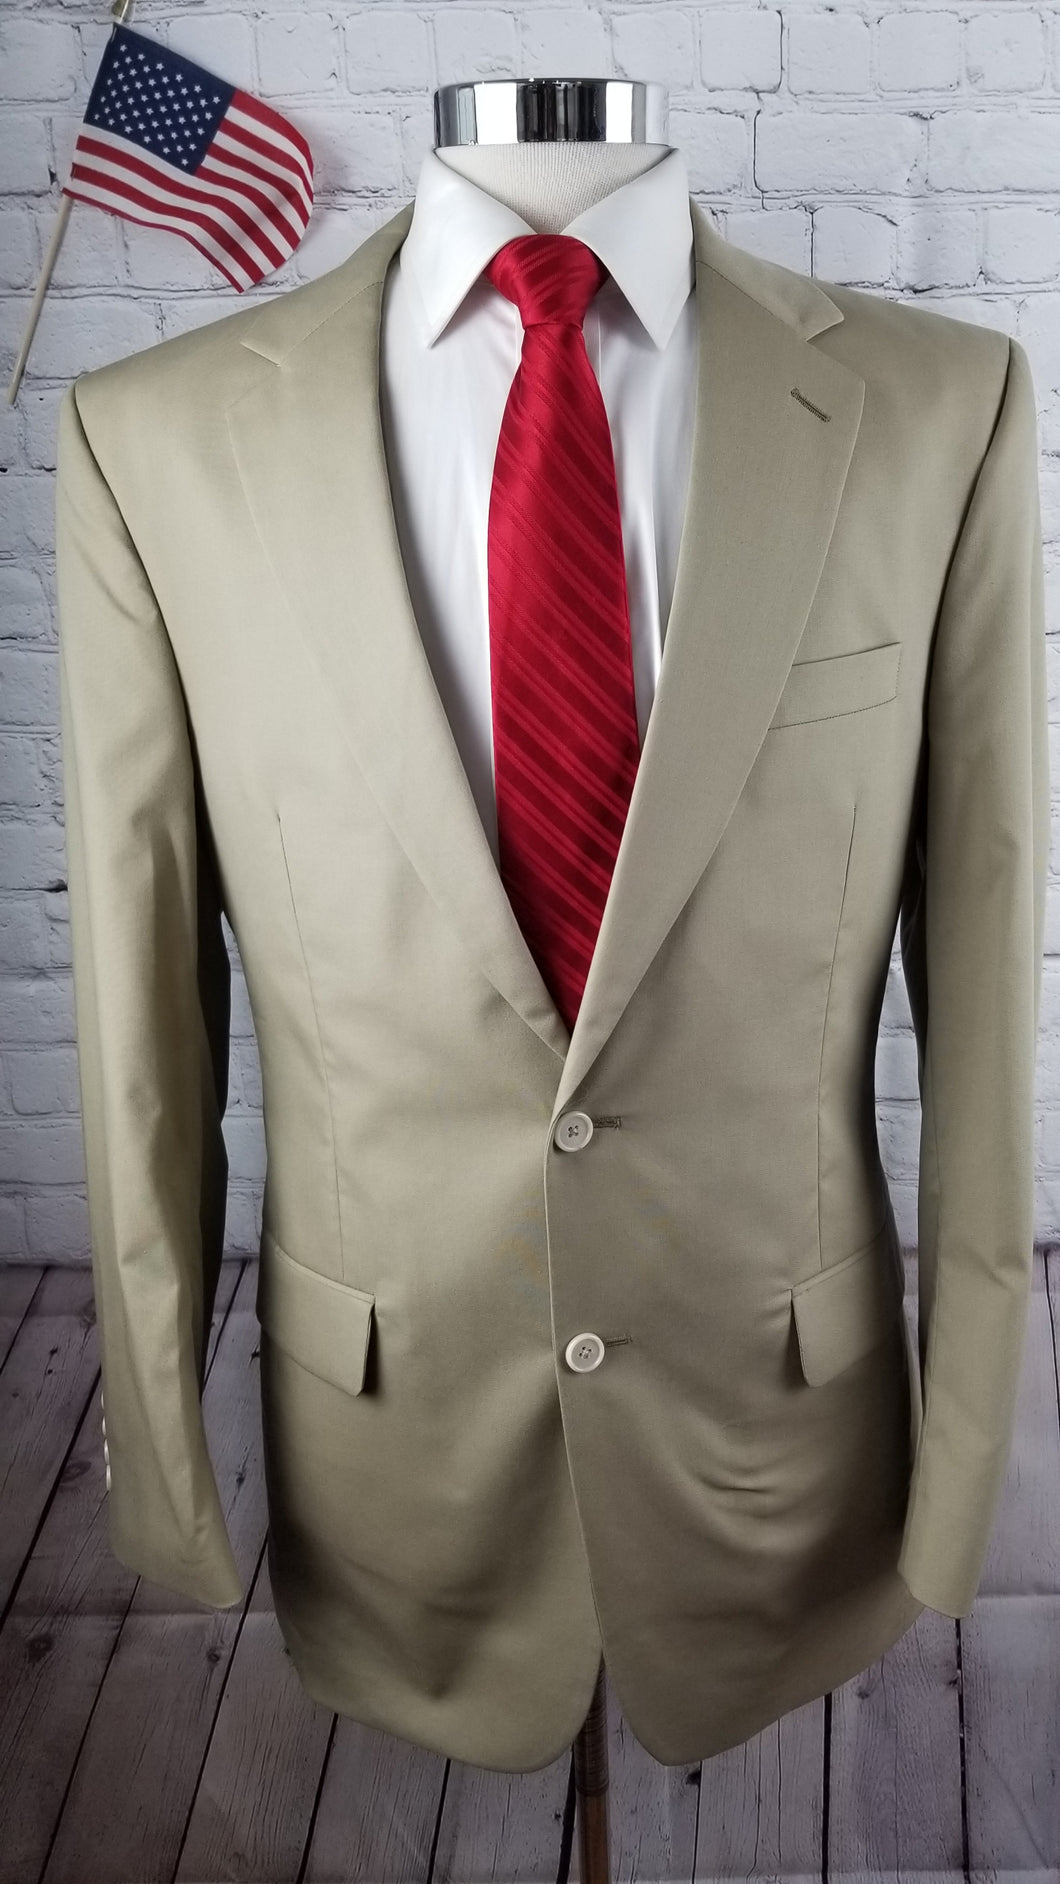 Jos. A Bank Beige Solid Suit 40L Pants 34X32 $795 - SUIT CHARITY OUTLET